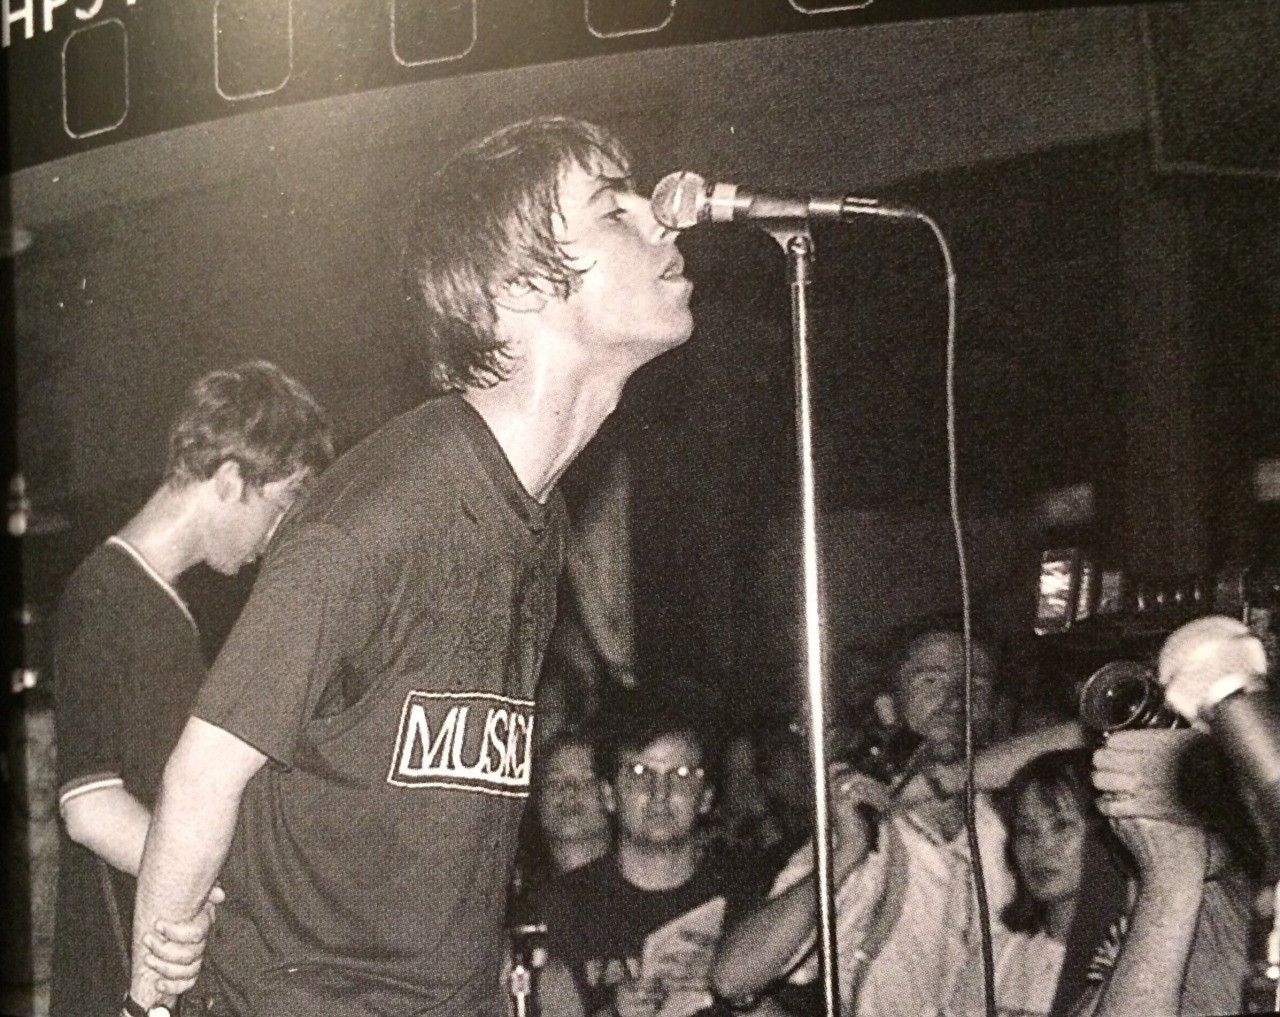 Pin by ty on rkid (With images)   Oasis music, Liam oasis ...